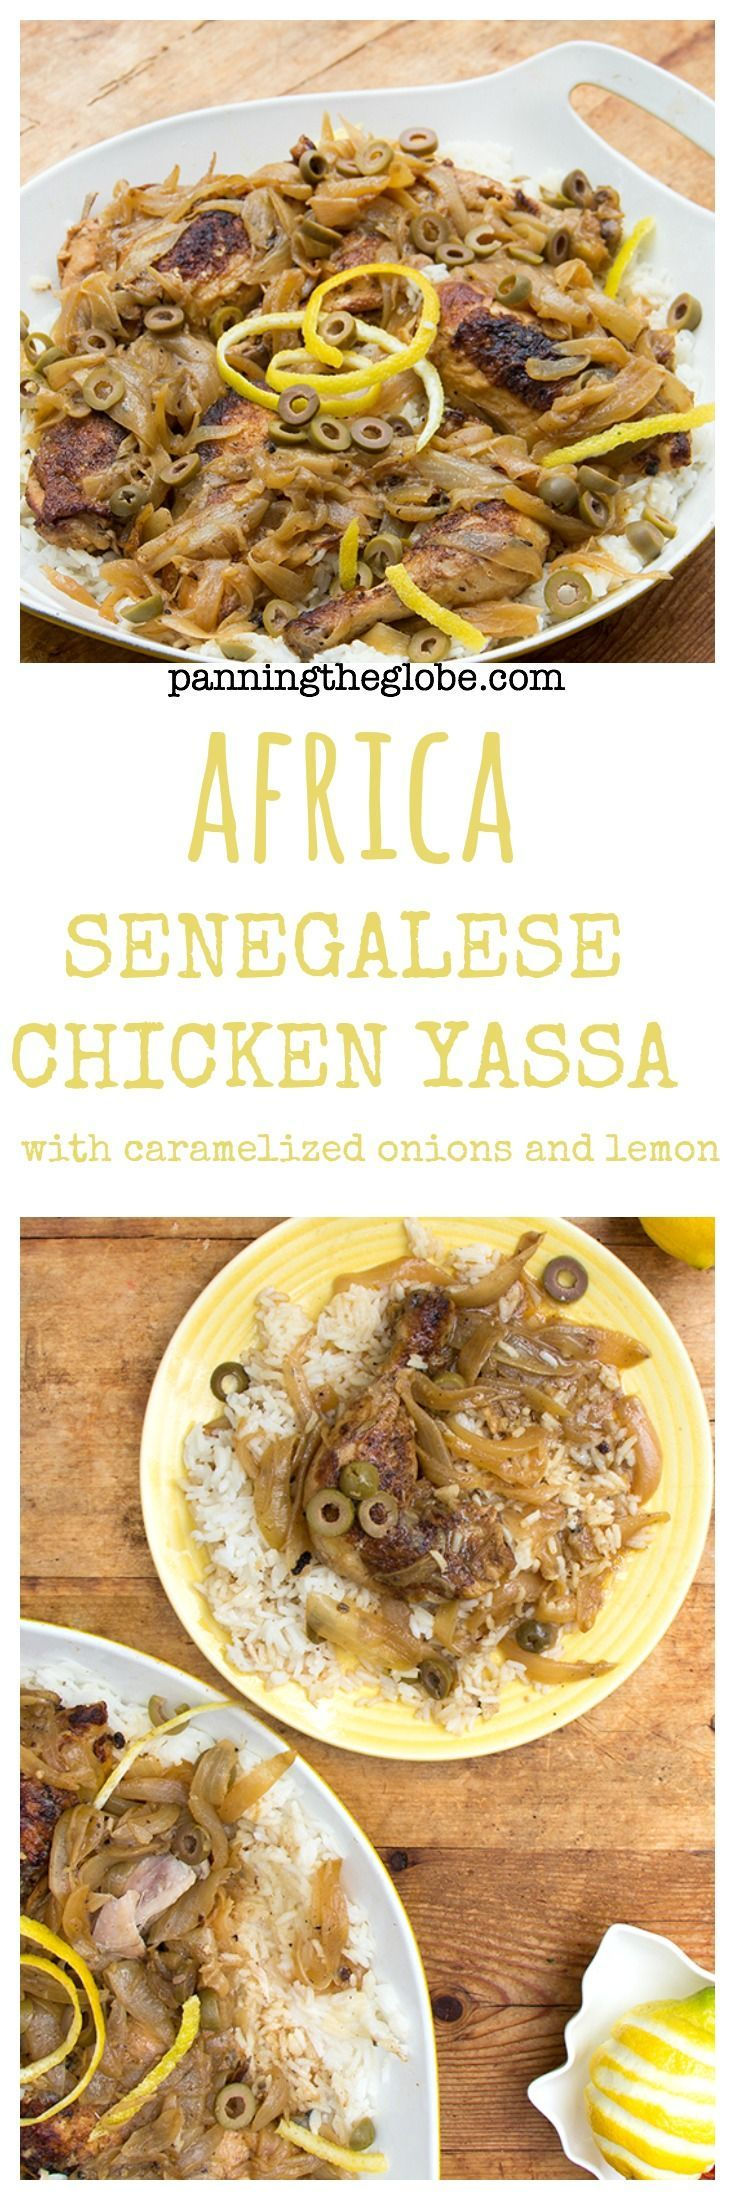 205 best recipes african images on pinterest african recipes senegalese chicken yassa west african foodwest african recipenigerian forumfinder Gallery